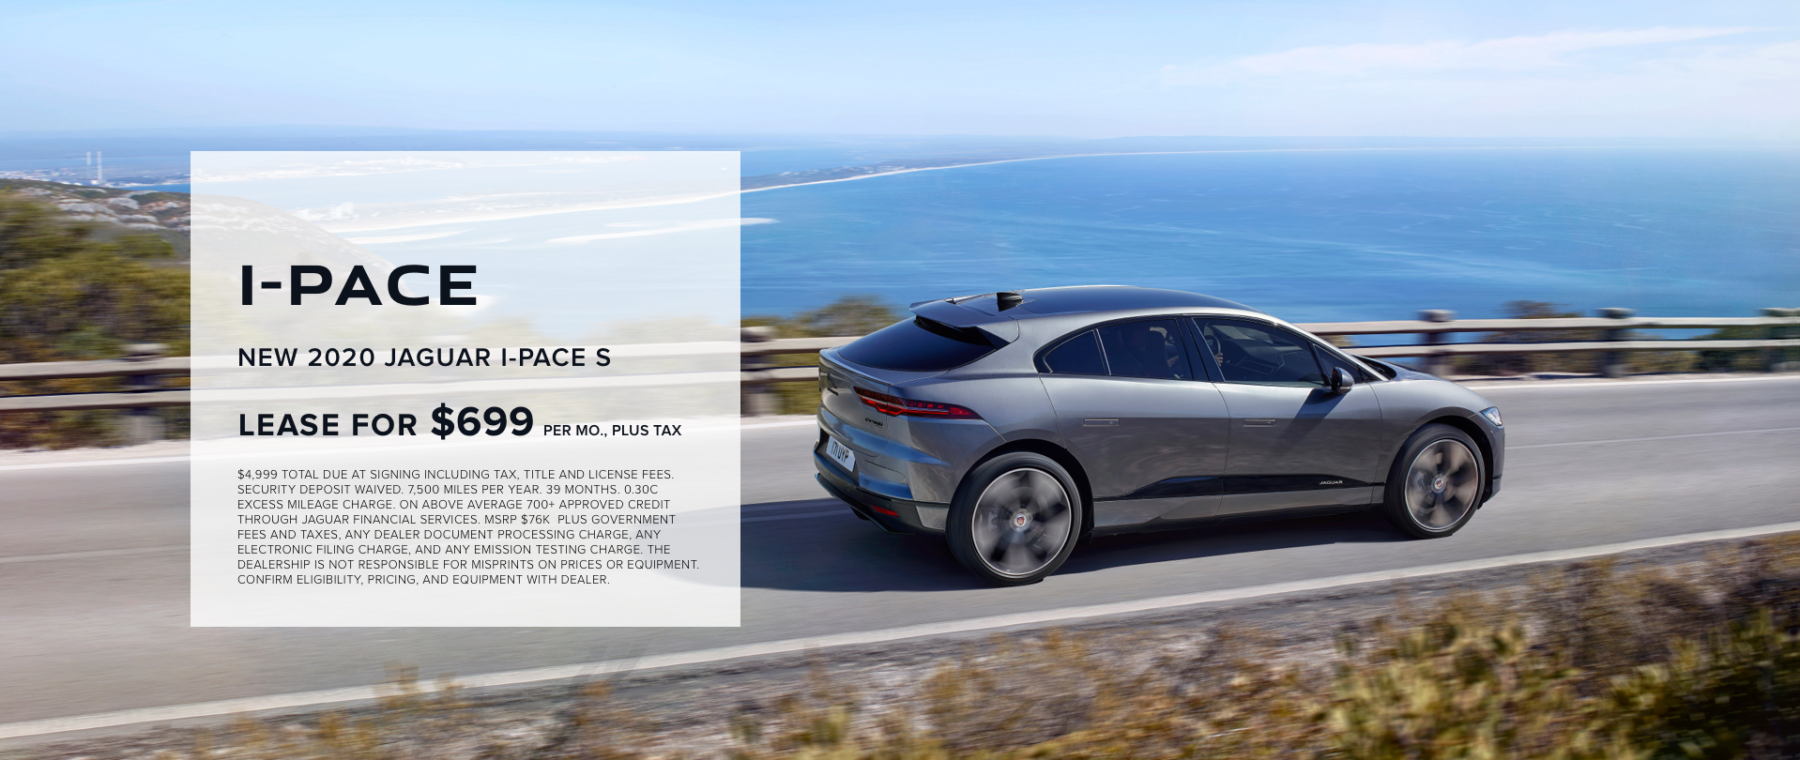 JNB-IPACE-Special_3-25-21